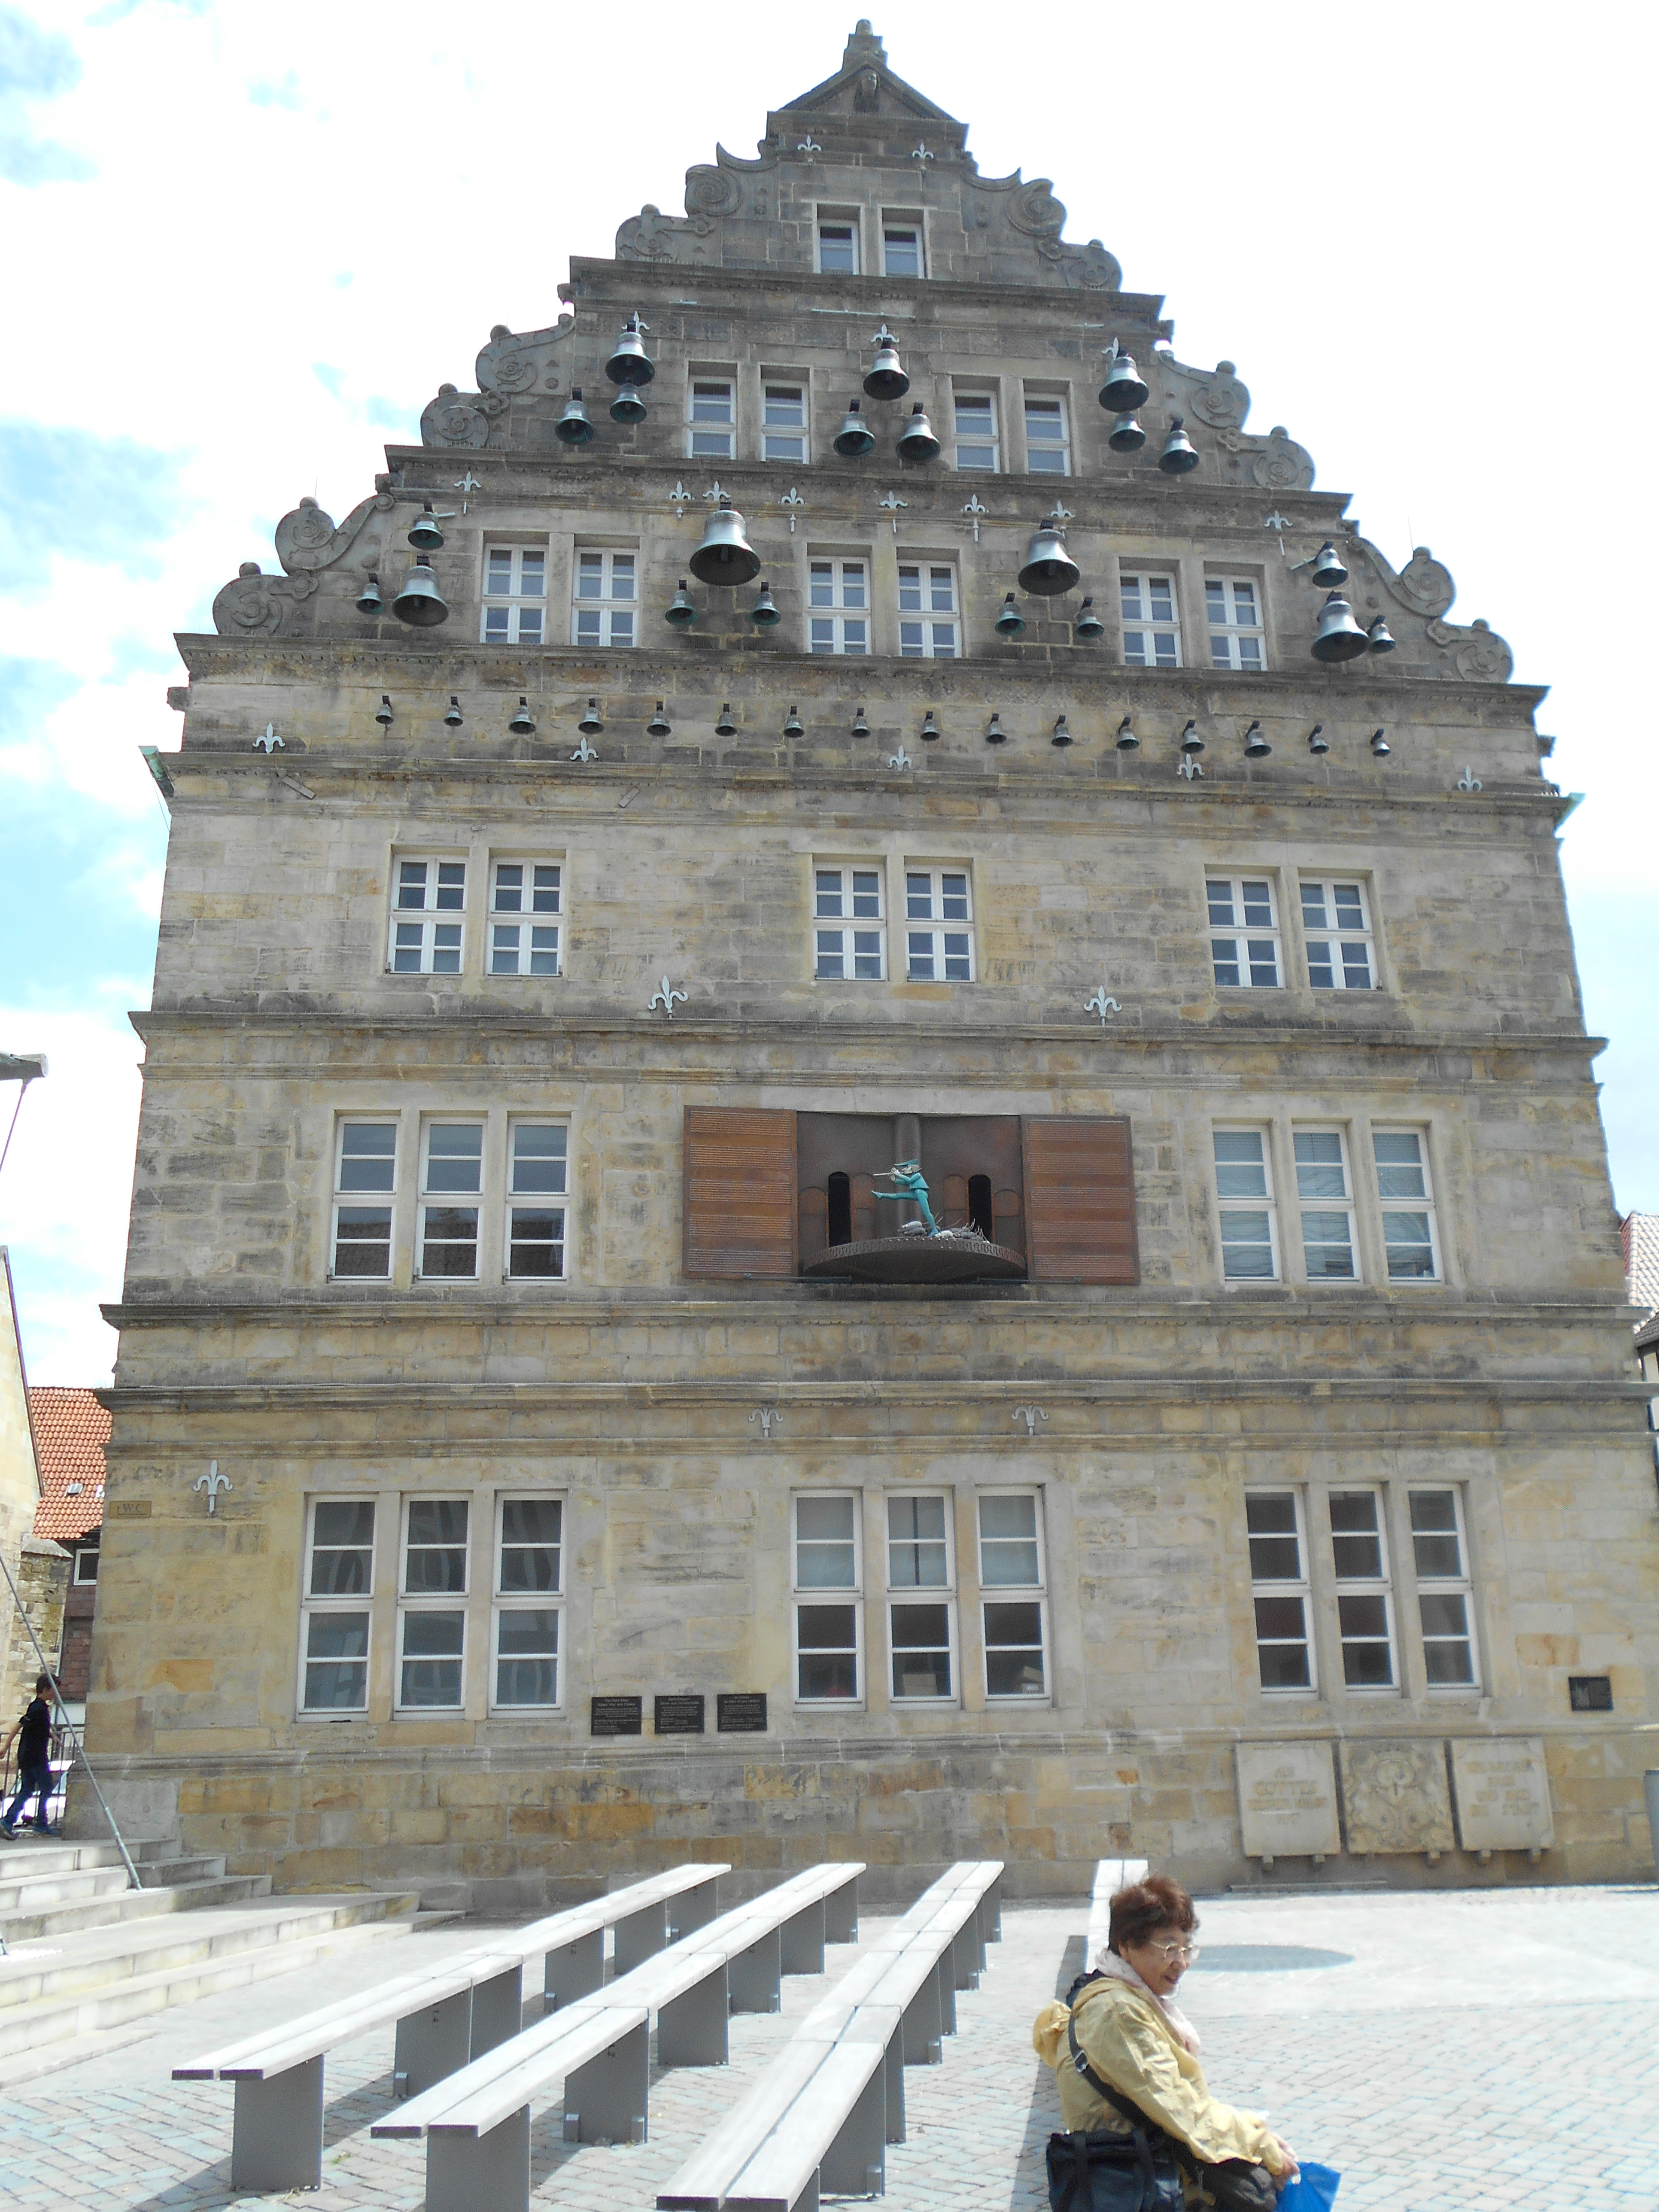 The Hochzeitshaus in Hamelin, Germany. The church's Glockenspiel plays the story of the Pied Piper of Hamelin. Photo taken on July 13, 2016.